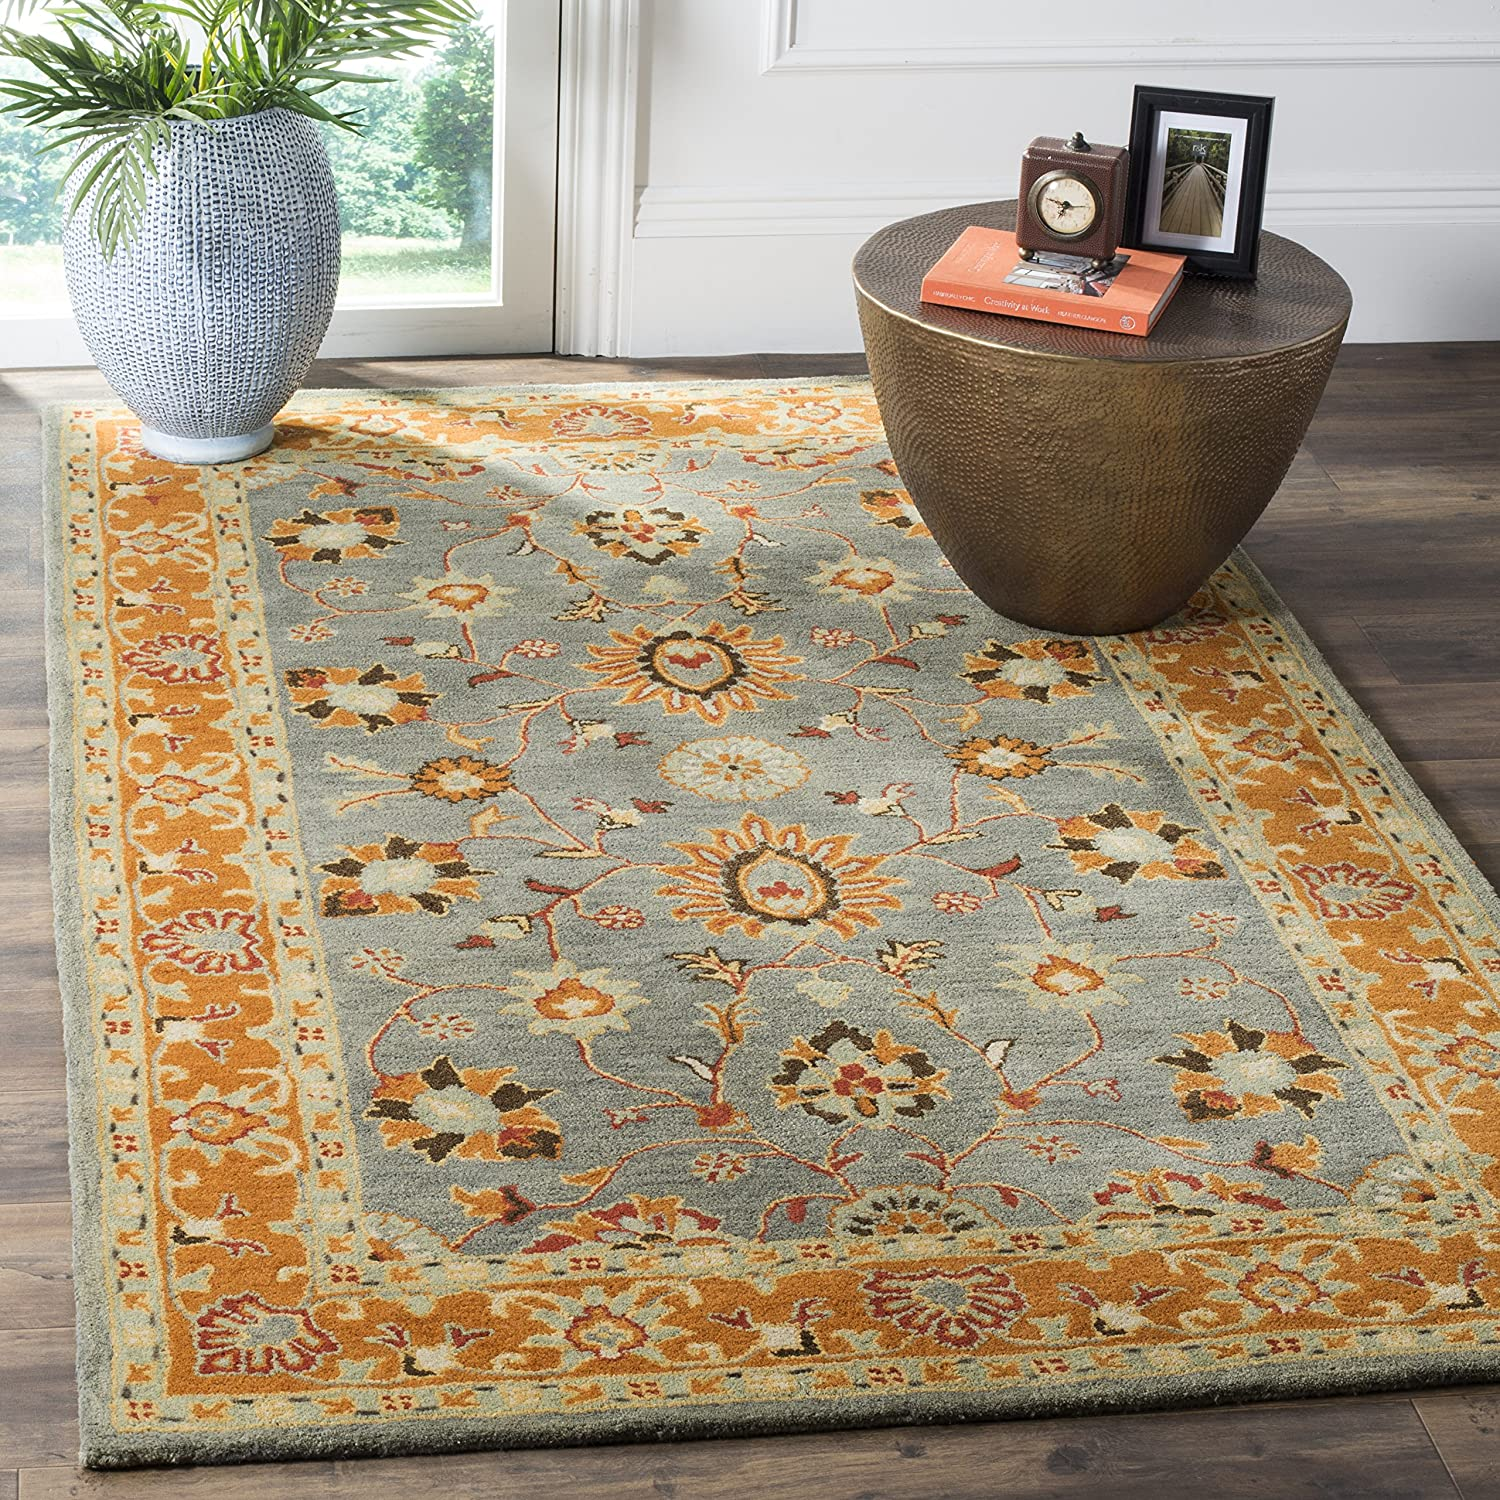 Safavieh Heritage Sale Special Price Collection HG401A Orienta Japan Maker New Traditional Handmade